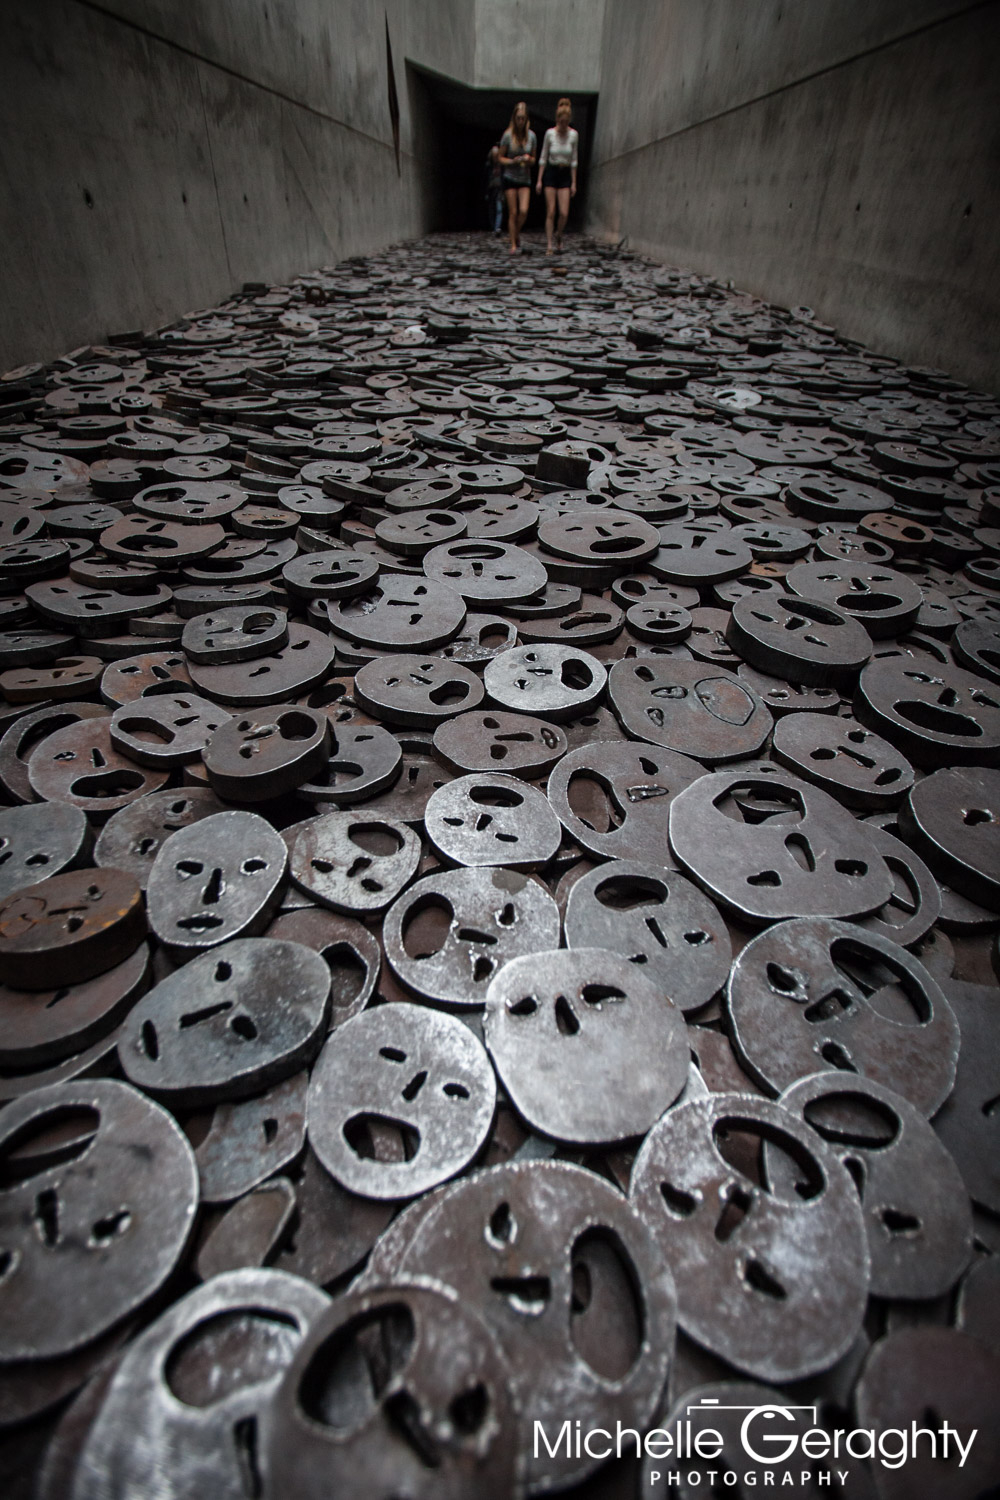 Shalekhet (Fallen Leaves) Exhibit, The Jewish Museum, Berlin, Germany